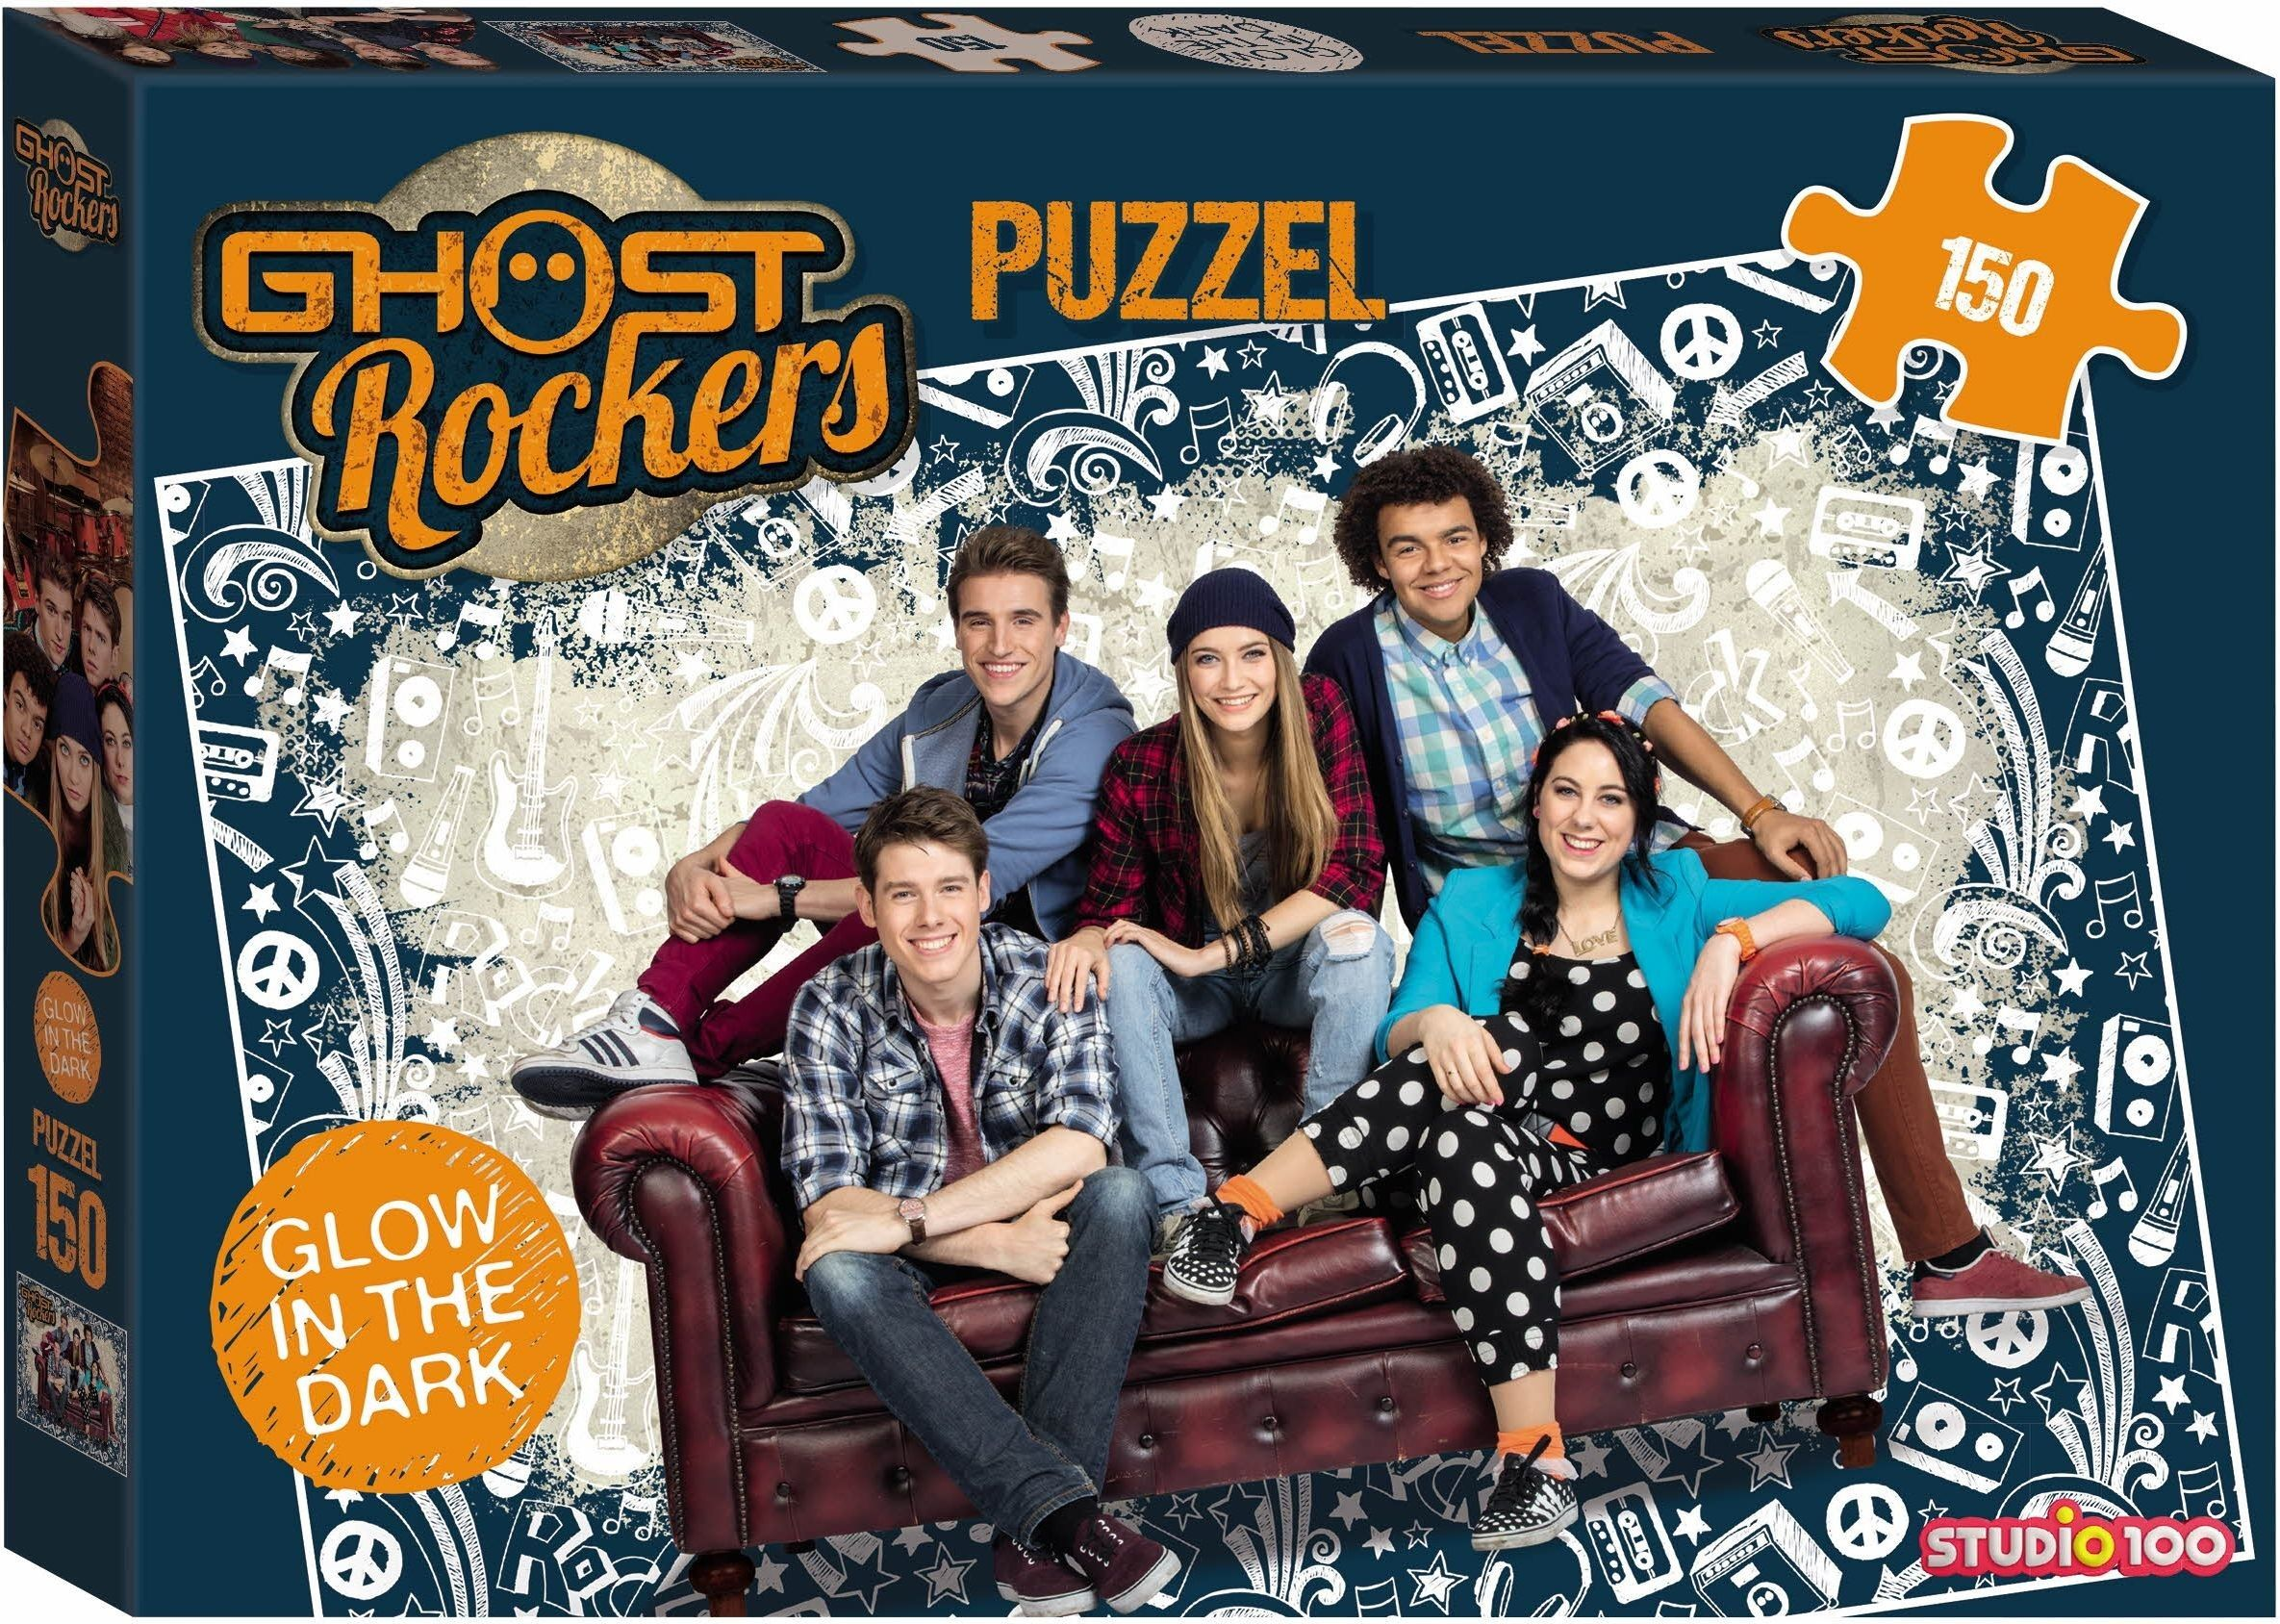 Kleurplaten Studio 100 Ghost Rockers.Fris Kleurplaten Studio 100 Ghost Rockers Klupaats Website